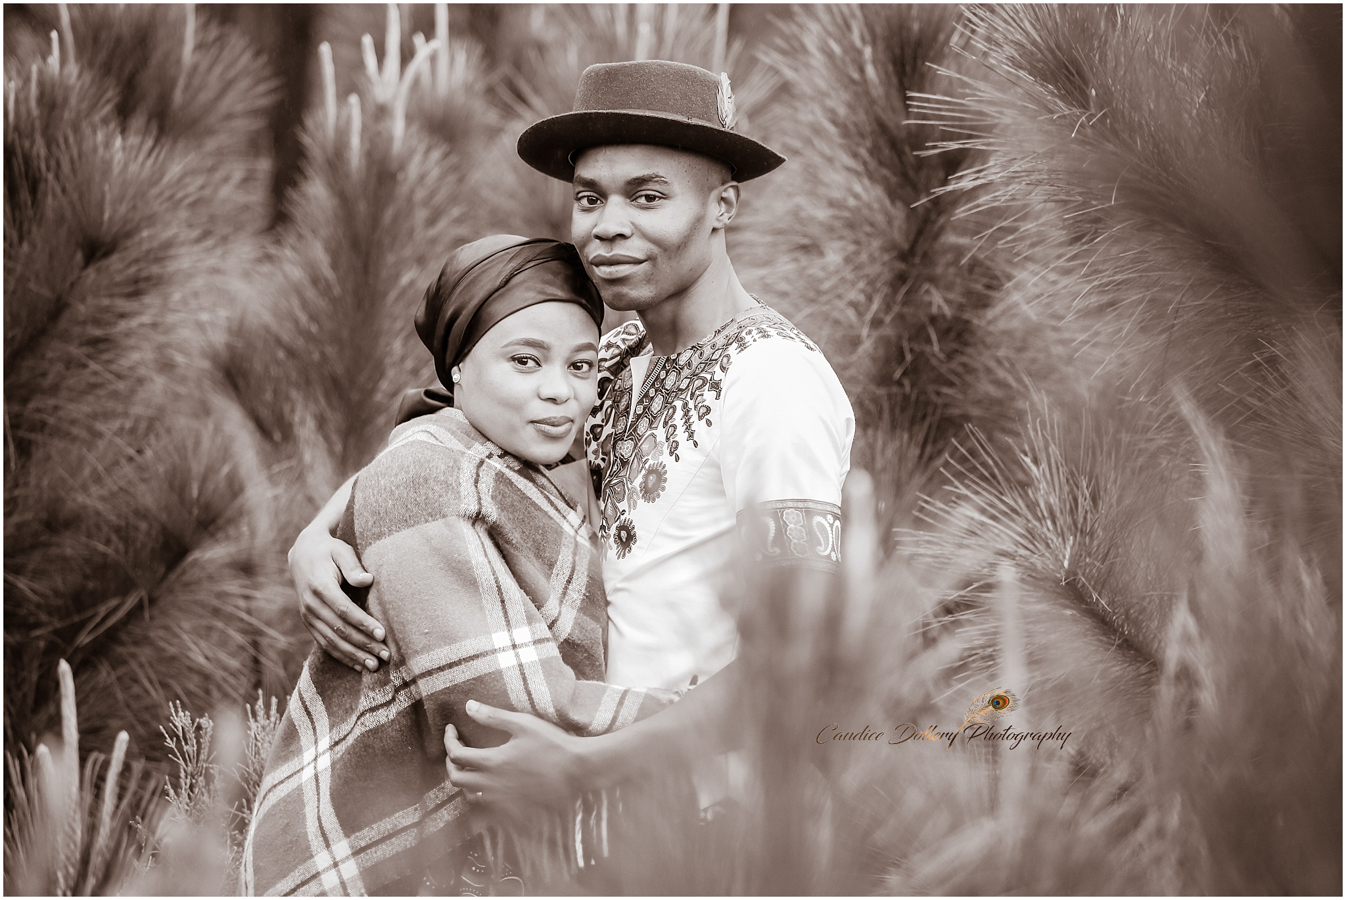 Sine & Kwandiwe - Candice Dollery Photography_2865